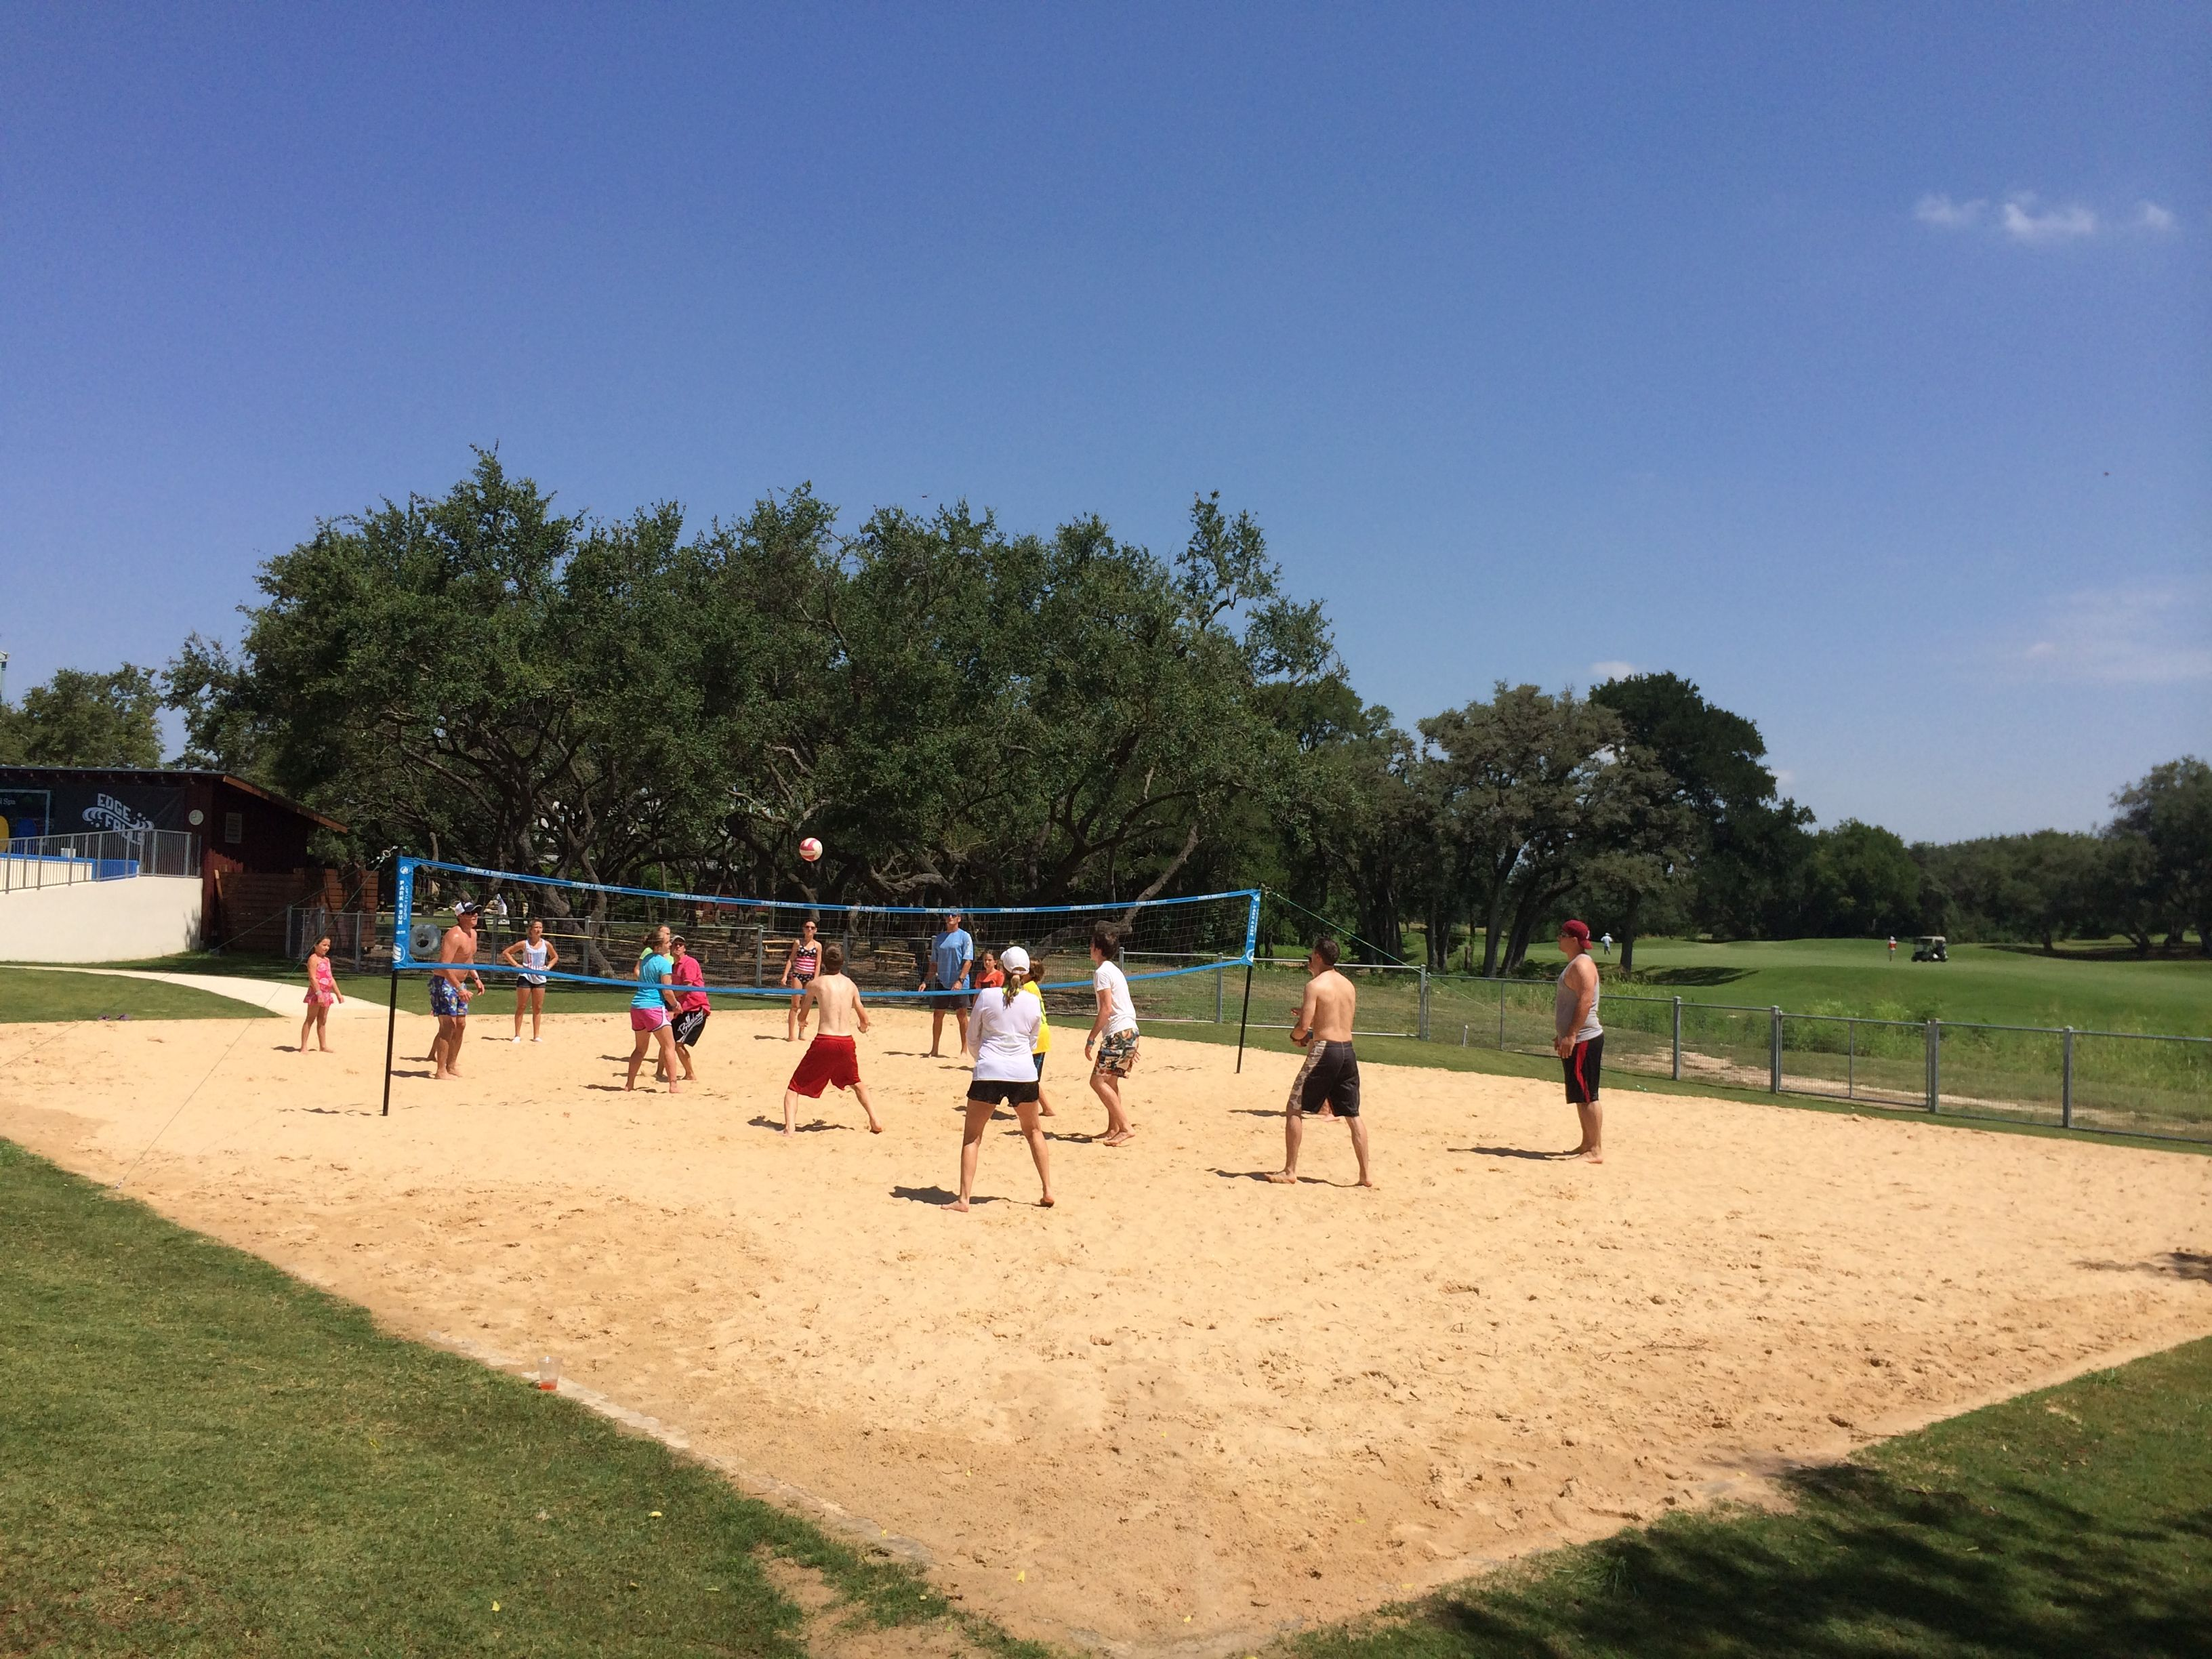 Family Volleyball At Hyatt Regency Hill Country Resort And Spa Hill Country Resort Water Slides Hill Country